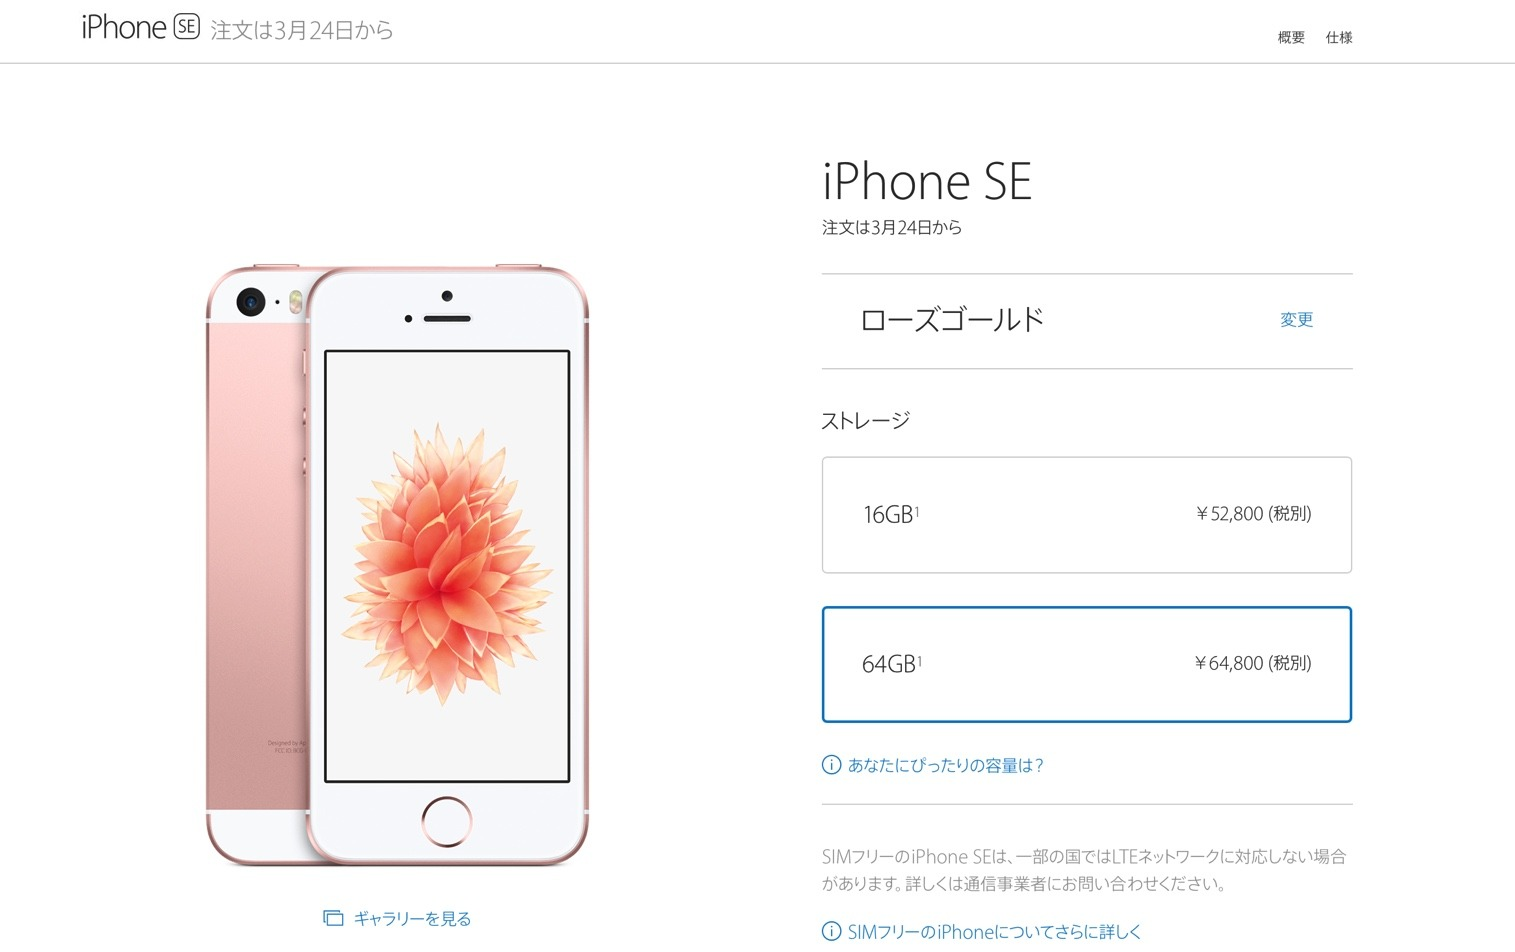 iphonese-price